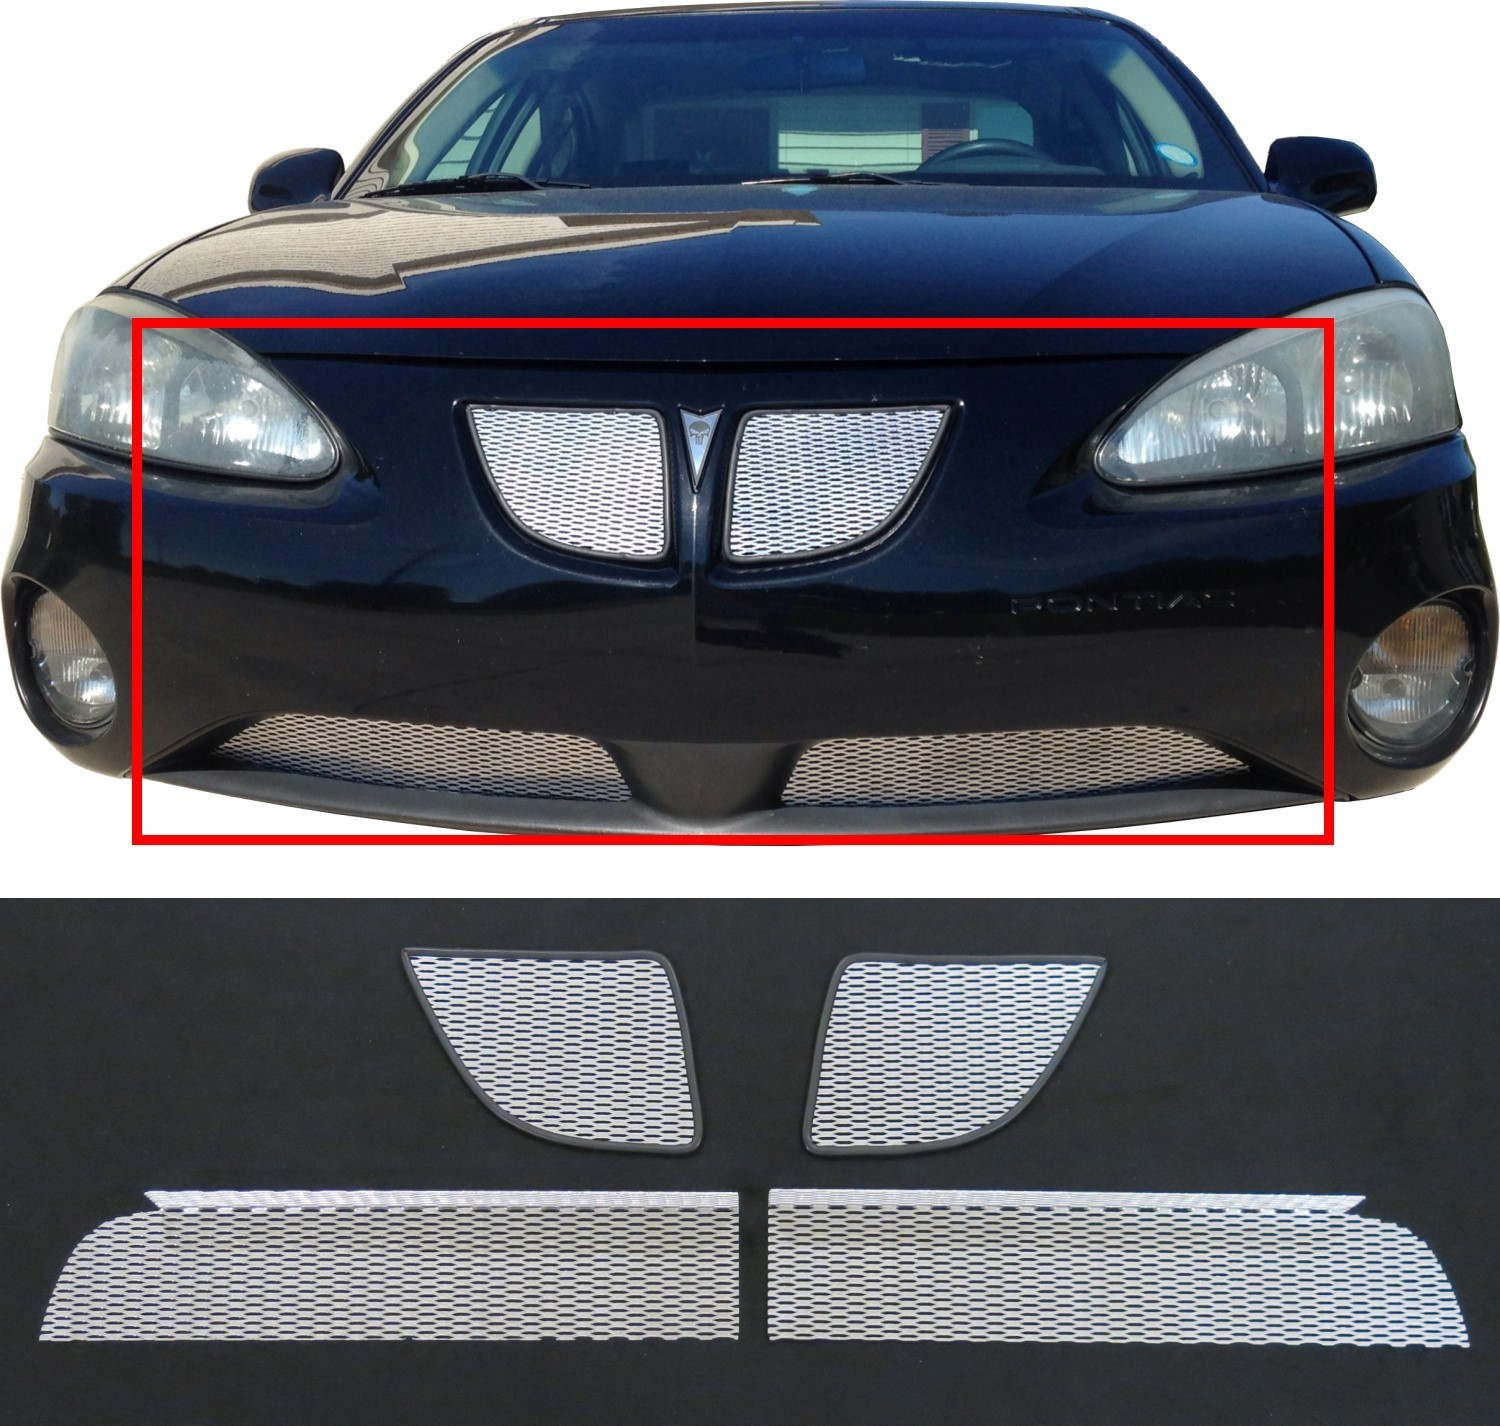 ccg 04 08 pontiac grand prix gtp diamond mesh grill grille inserts 4 pcs silver 701327257756 ebay. Black Bedroom Furniture Sets. Home Design Ideas